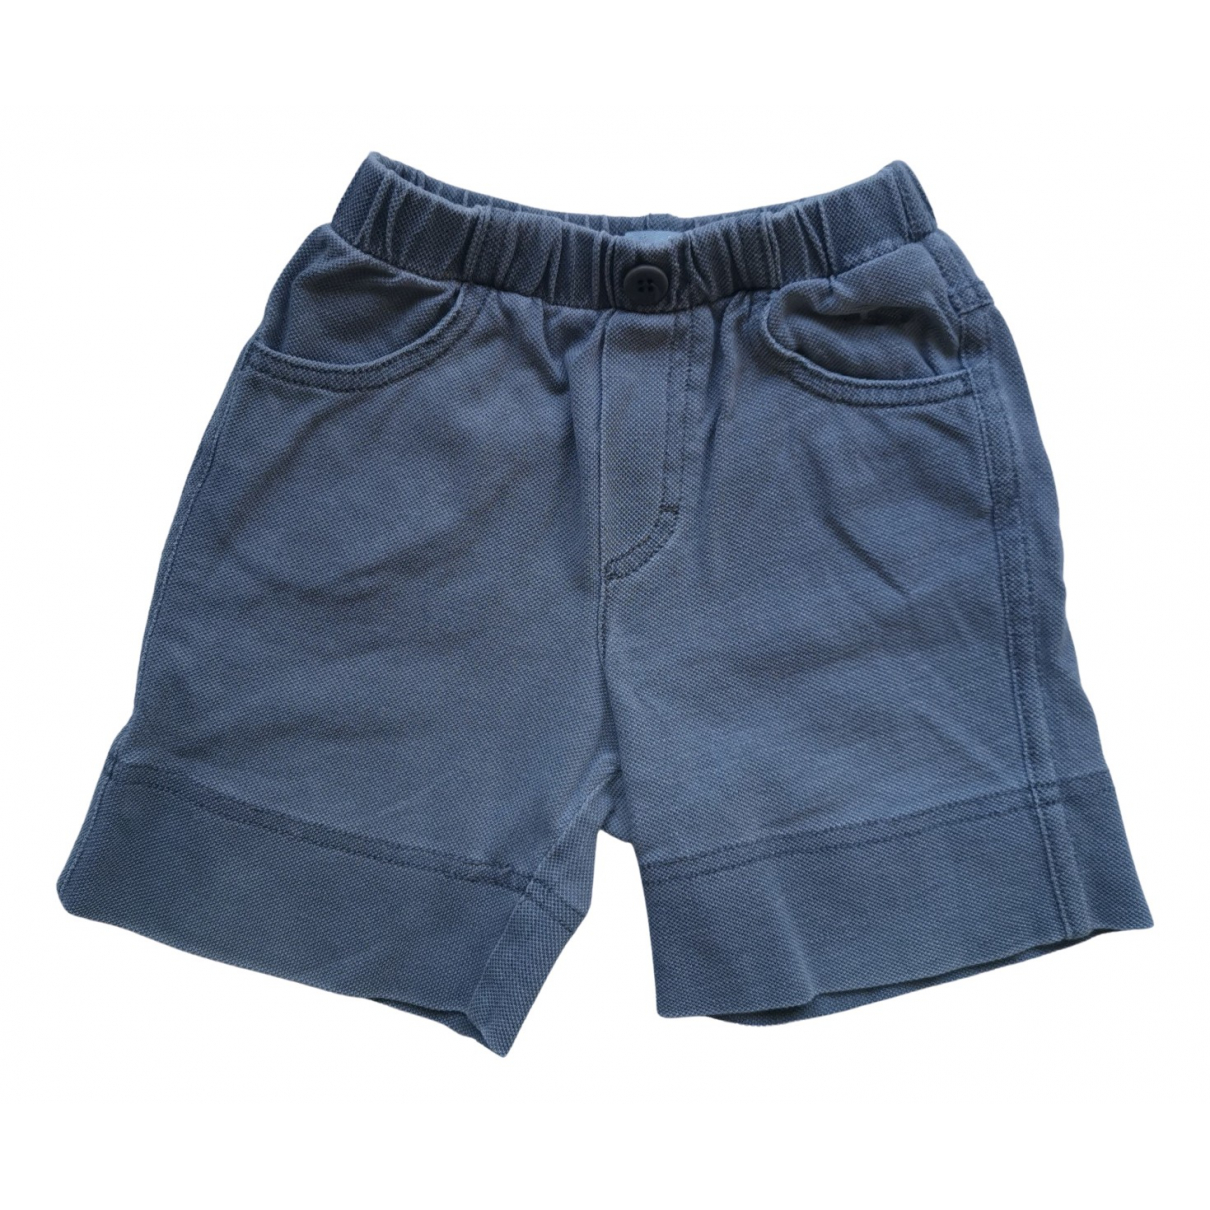 Il Gufo N Grey Cotton Shorts for Kids 6 months - up to 67cm FR